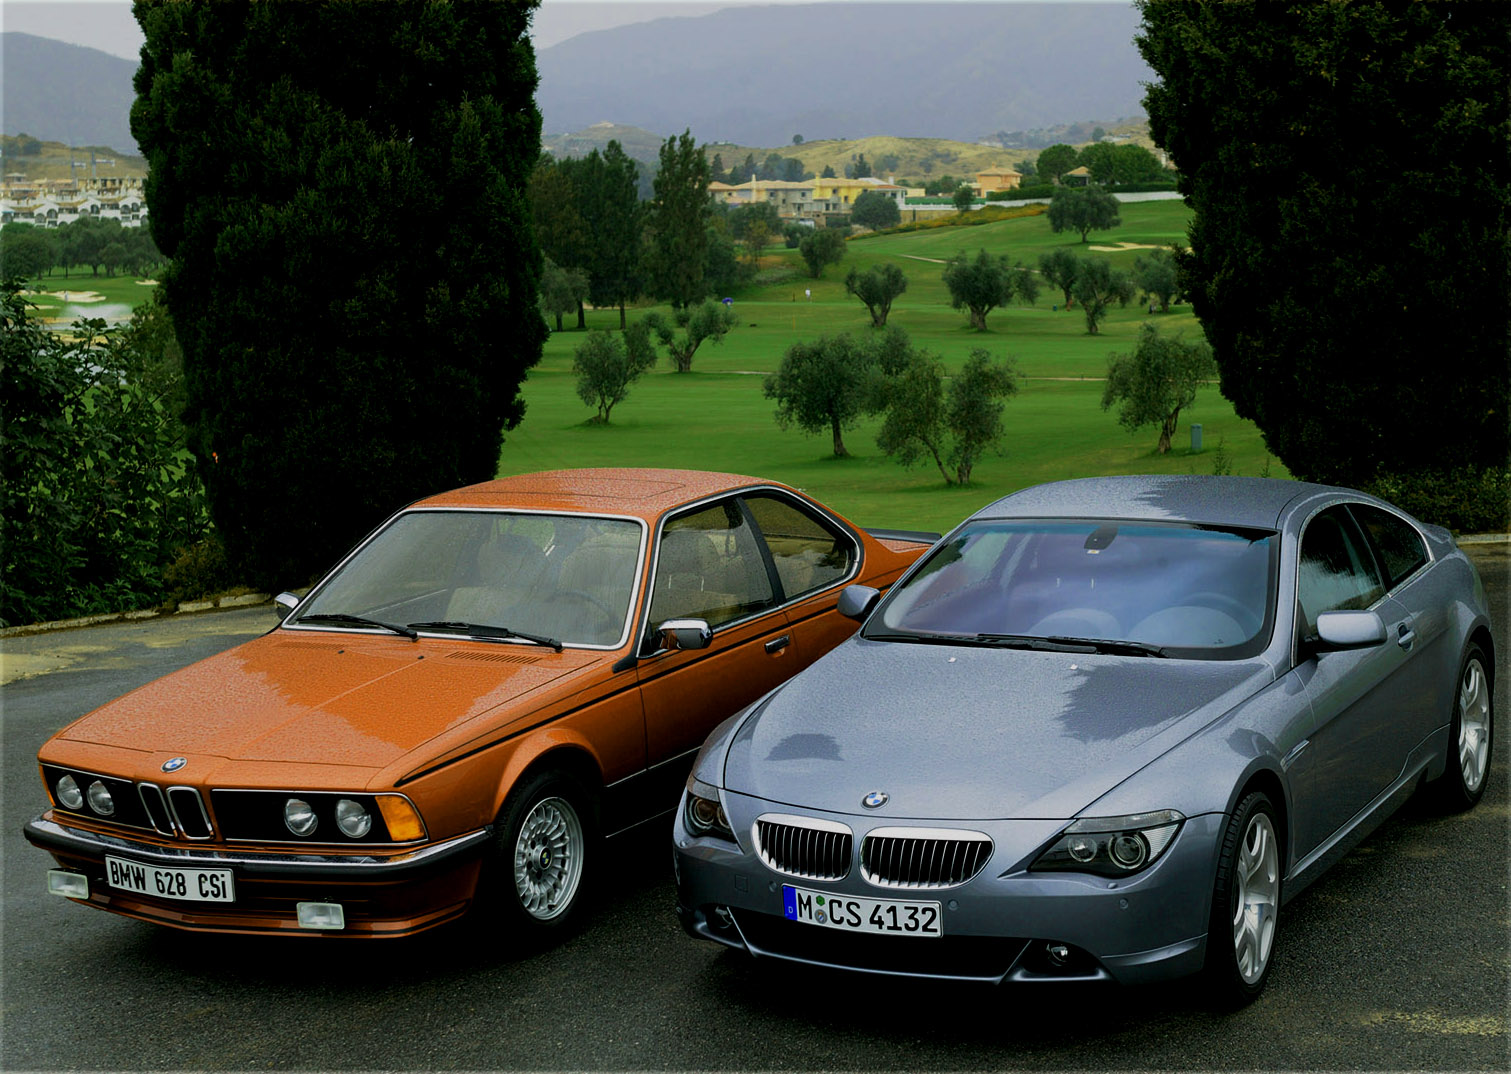 BMW-645ci-Coupe-635csi-1600x1200.jpg